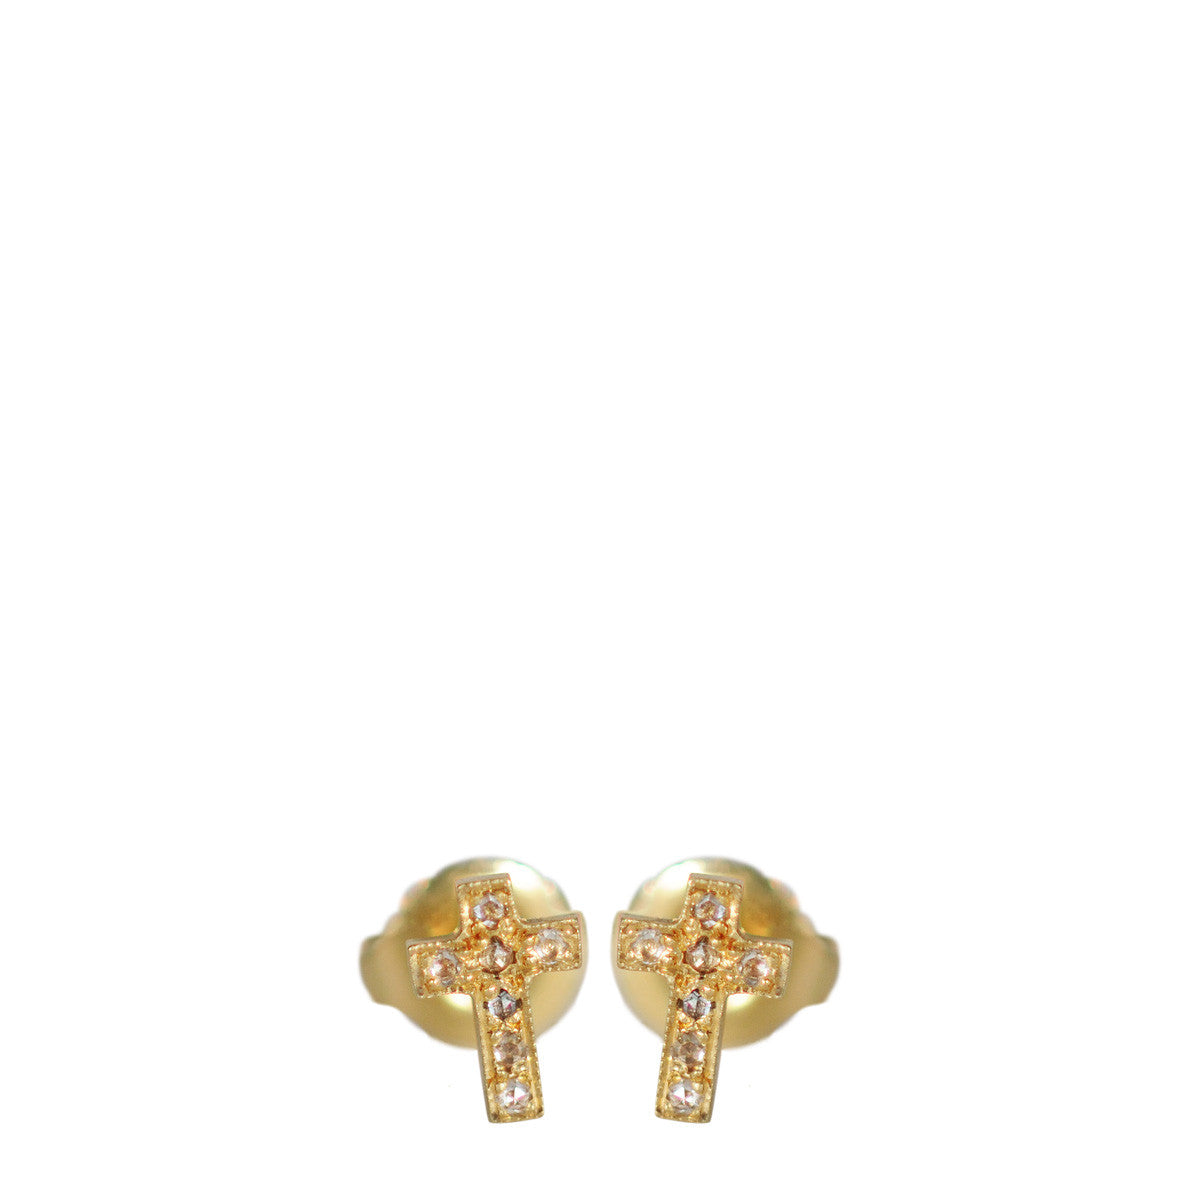 18K Gold Diamond Pave Cross Stud Earrings